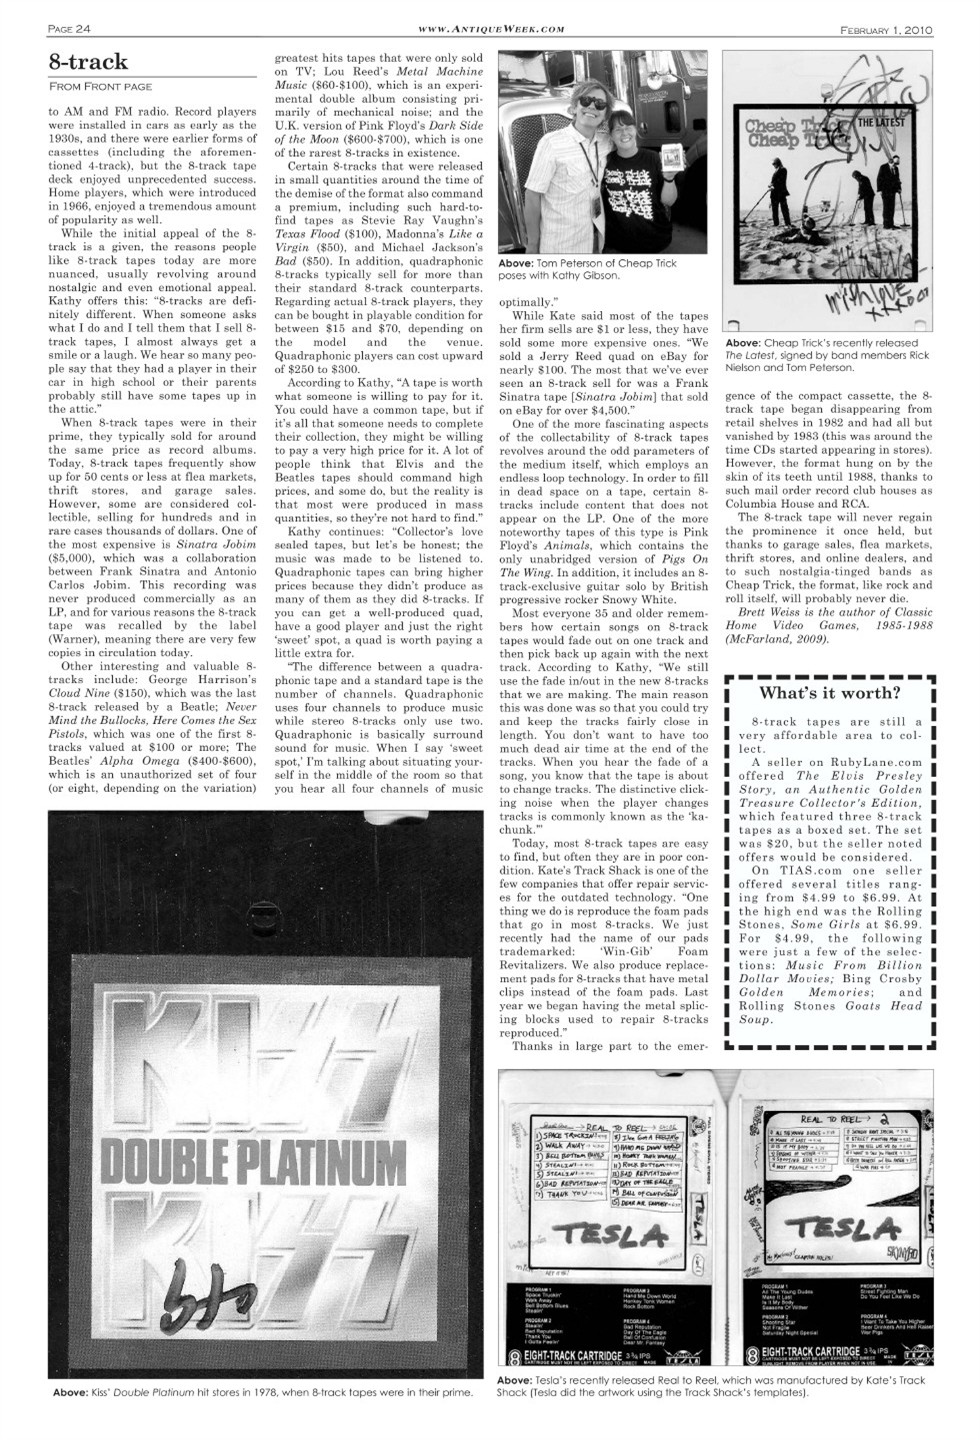 Antique Week 8-Track Story Pg 1